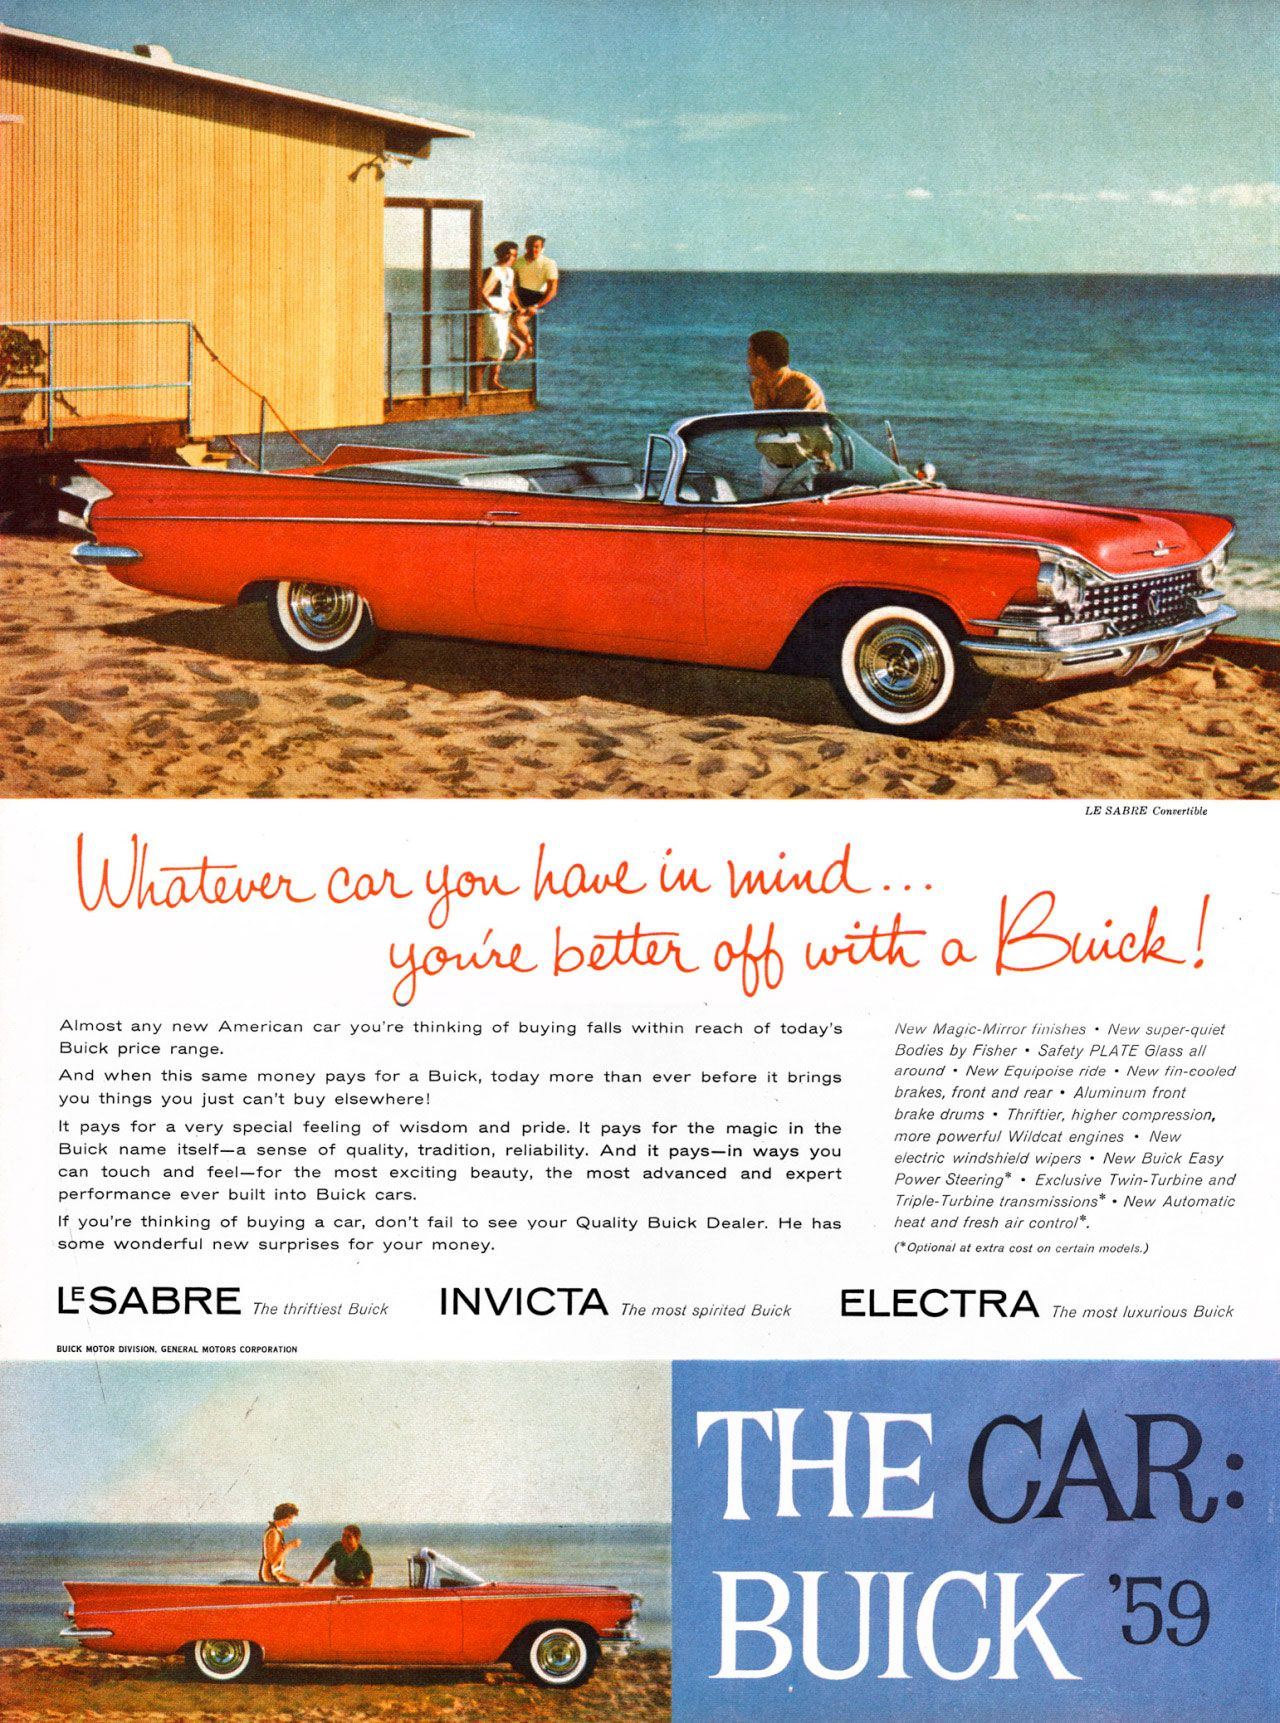 Whatever car you have in mind... you're better off with a Buick! Almost any new American car you're thinking of buying falls within reach of today's Buick price range. And when this same money pays for a Buick, today more than ever before it brings you things you just can't by elsewhere! It pays for a very special feeling of wisdom and pride. It pays for the magic in the Buick name itself—a sense of quality, tradition, reliability. And it pays—in ways you can touch and feel—for the most exciting beauty, the most advanced and expert performance ever built into Buick cars. If you're thinking of buying a car, don't fail to see your Quality Buick Dealer. He has some wonderful new surprises for your money. LE SABO: Comxthble New Mayic-Mirror IMishes - New super-quiet Bodies by Fisher - Safety PLATE LASS all around - New Equipoise ride - New fin-eoolecl brakes, front and rear - AlU1,171/177 front brake o,ums - Thriftier, higher compression, tnore powerful Wildcat engines - New elect, windshield wipers - New Buick Easy Power Steering. - Exclusive Twin-Turbine and Triple-Turbine transmissions. - New Automatic heat and fresh air control.. ,Optional at extra cost on certain models, IISAEiRE The thriftiest Buick INVICTA The Most spirited Buick ELECTRA The most luxurious Buick BUICK MOTOR GENERAL MOTORS CORPORATION